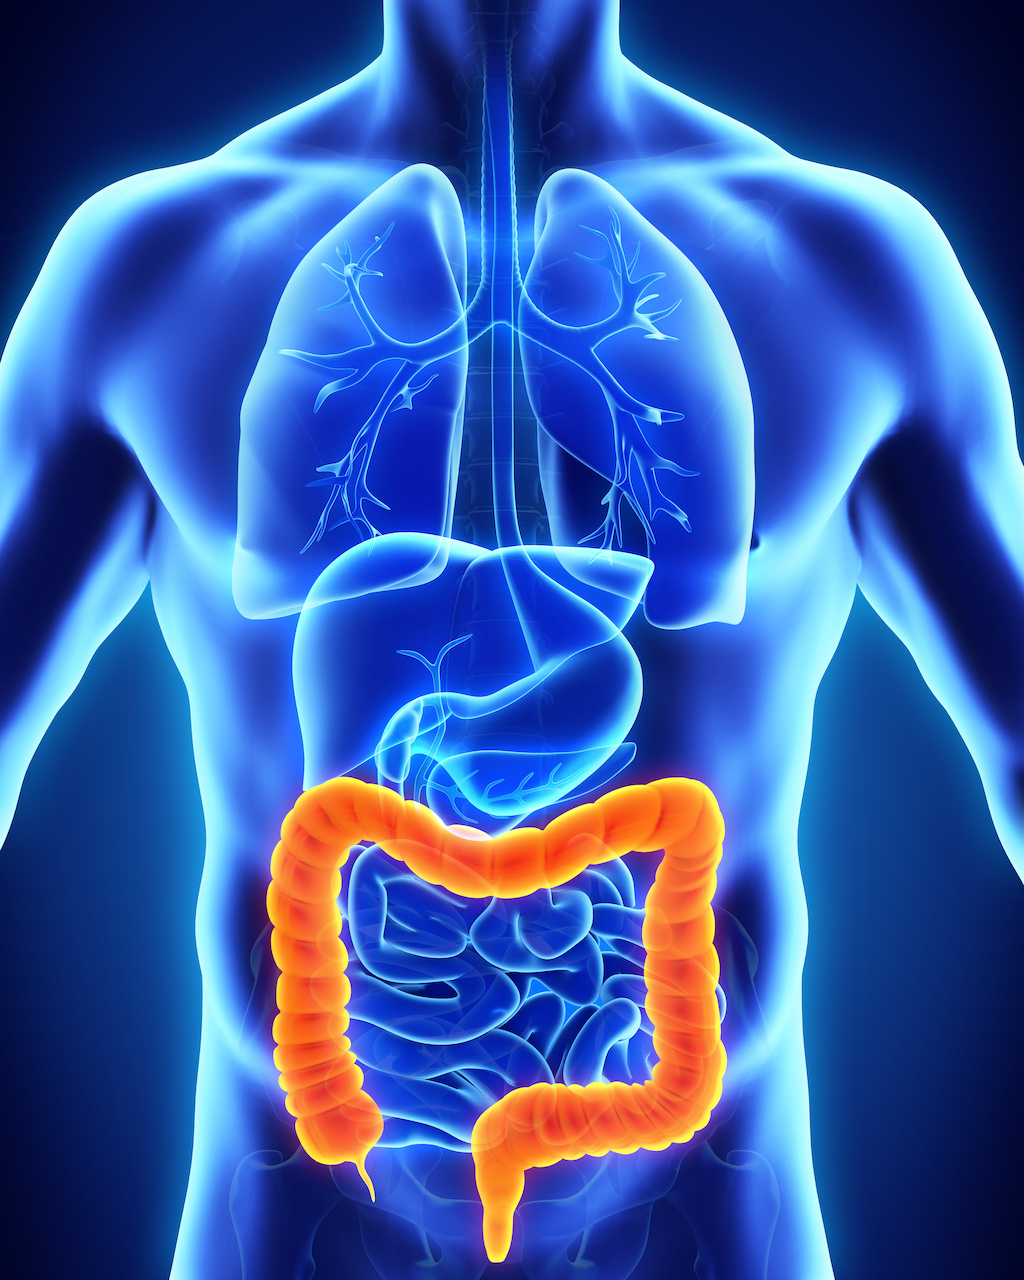 Pooled Analysis Underscores Safety of Biosimilar Infliximab, CT-P13, in Patients With IBD